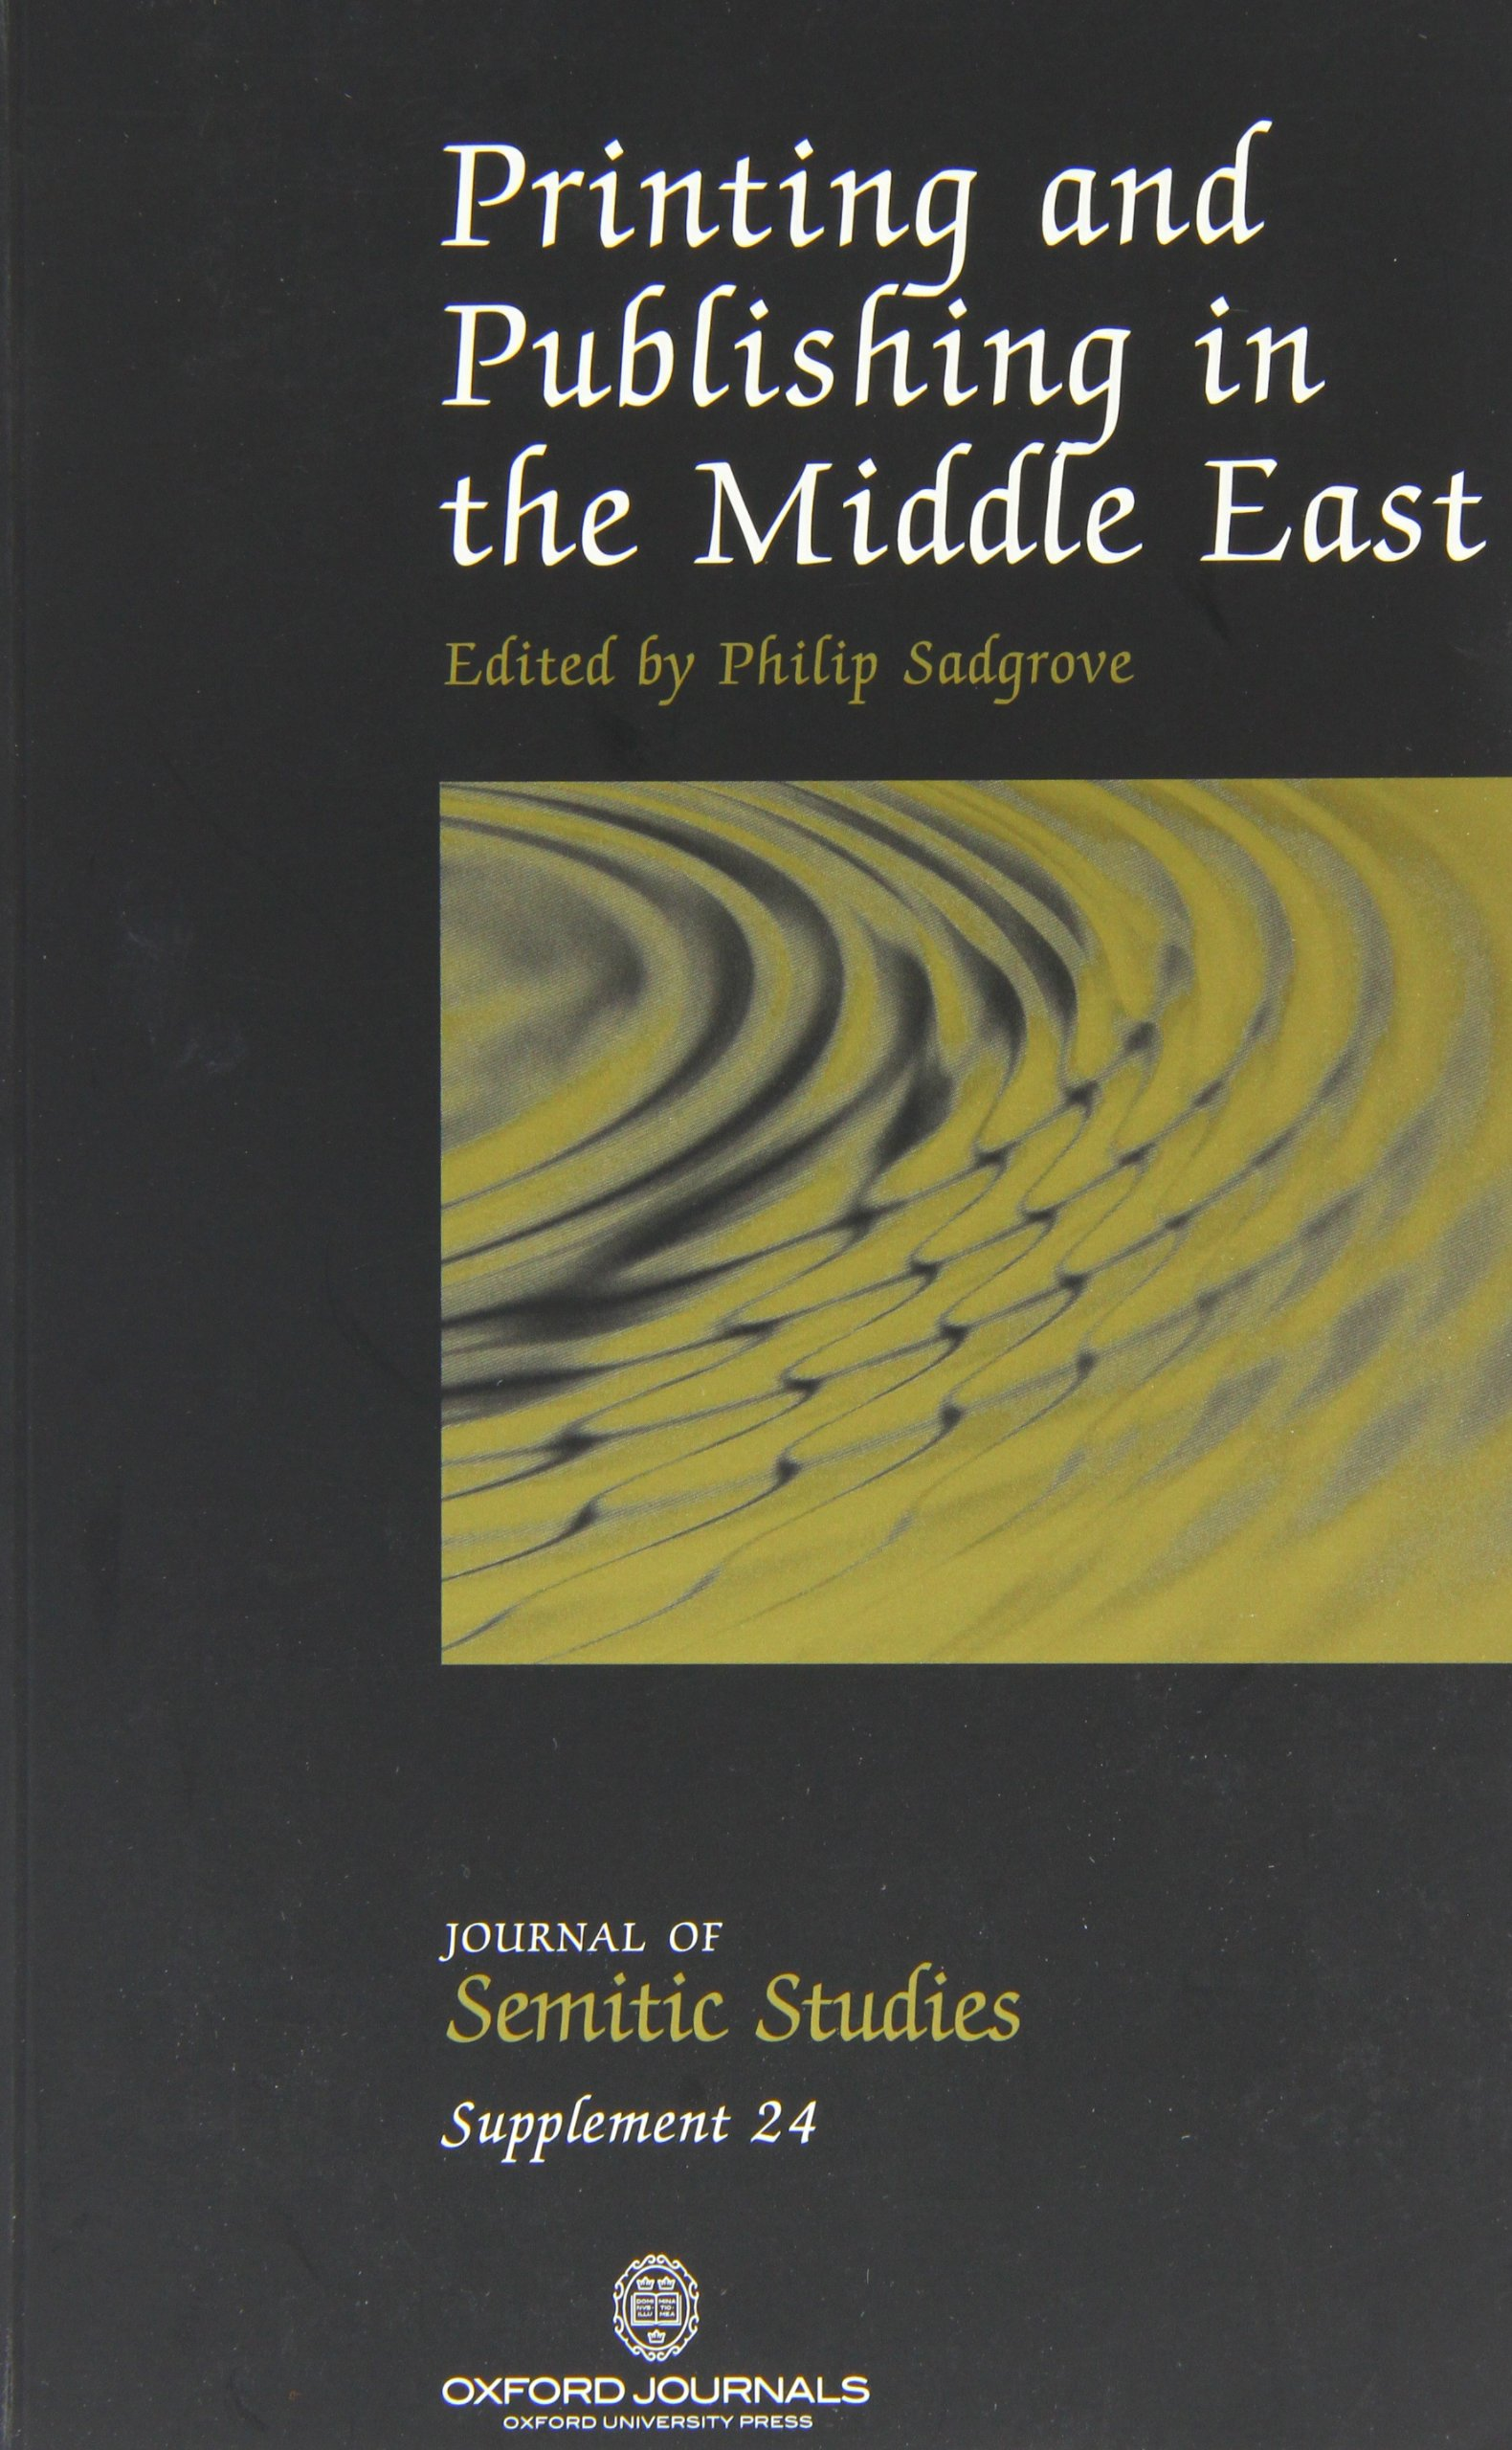 Printing and Publishing in the Middle East: Papers from the Second Symposium on the History of Printing and Publishing in the Languages and Countries (Journal of Semitic Studies Supplement) pdf epub